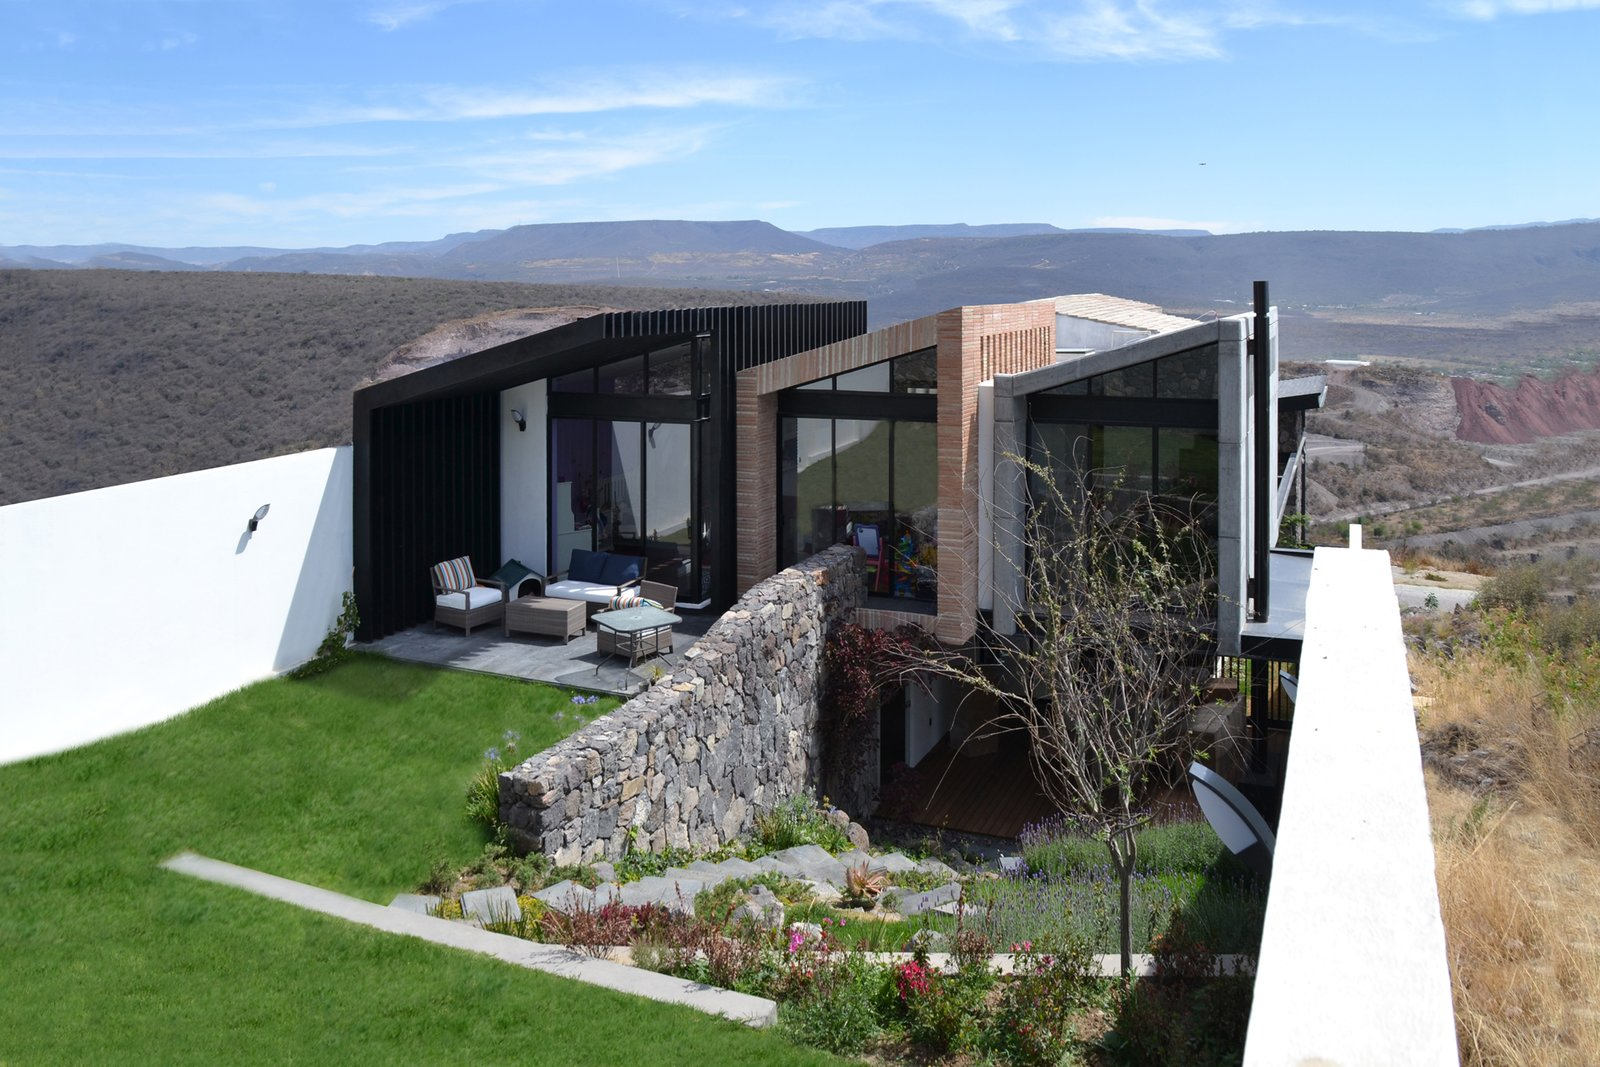 West Facade Tagged: Outdoor, Field, Garden, Back Yard, Slope, Grass, Gardens, Flowers, Stone Patio, Porch, Deck, Walkways, Decking Patio, Porch, Deck, and Wood Patio, Porch, Deck.  Casa AB by e|arquitectos